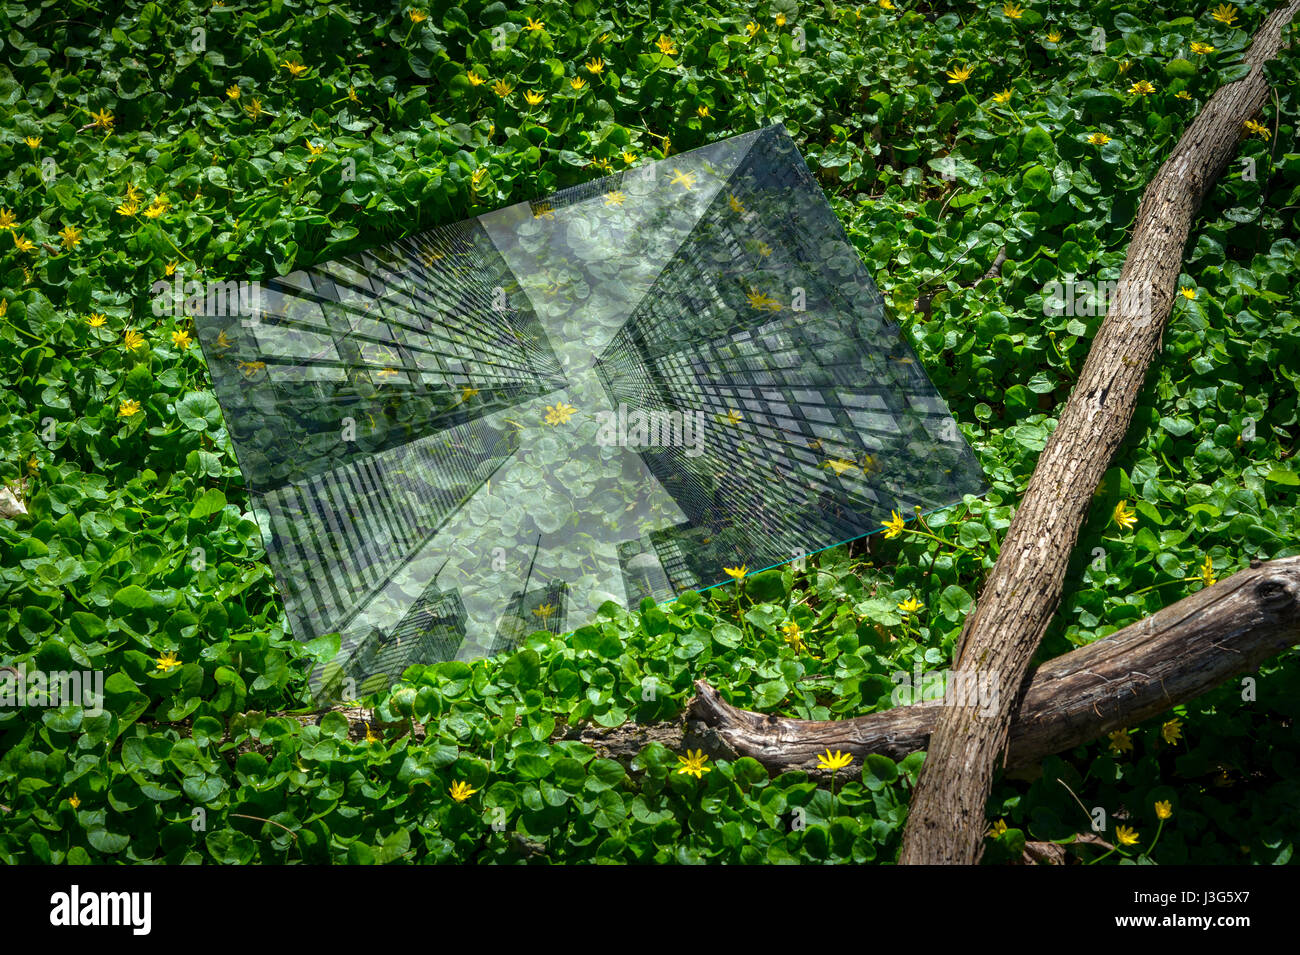 Abstract Deforestation Concept Showing City Reflection In A Forest - Stock Image